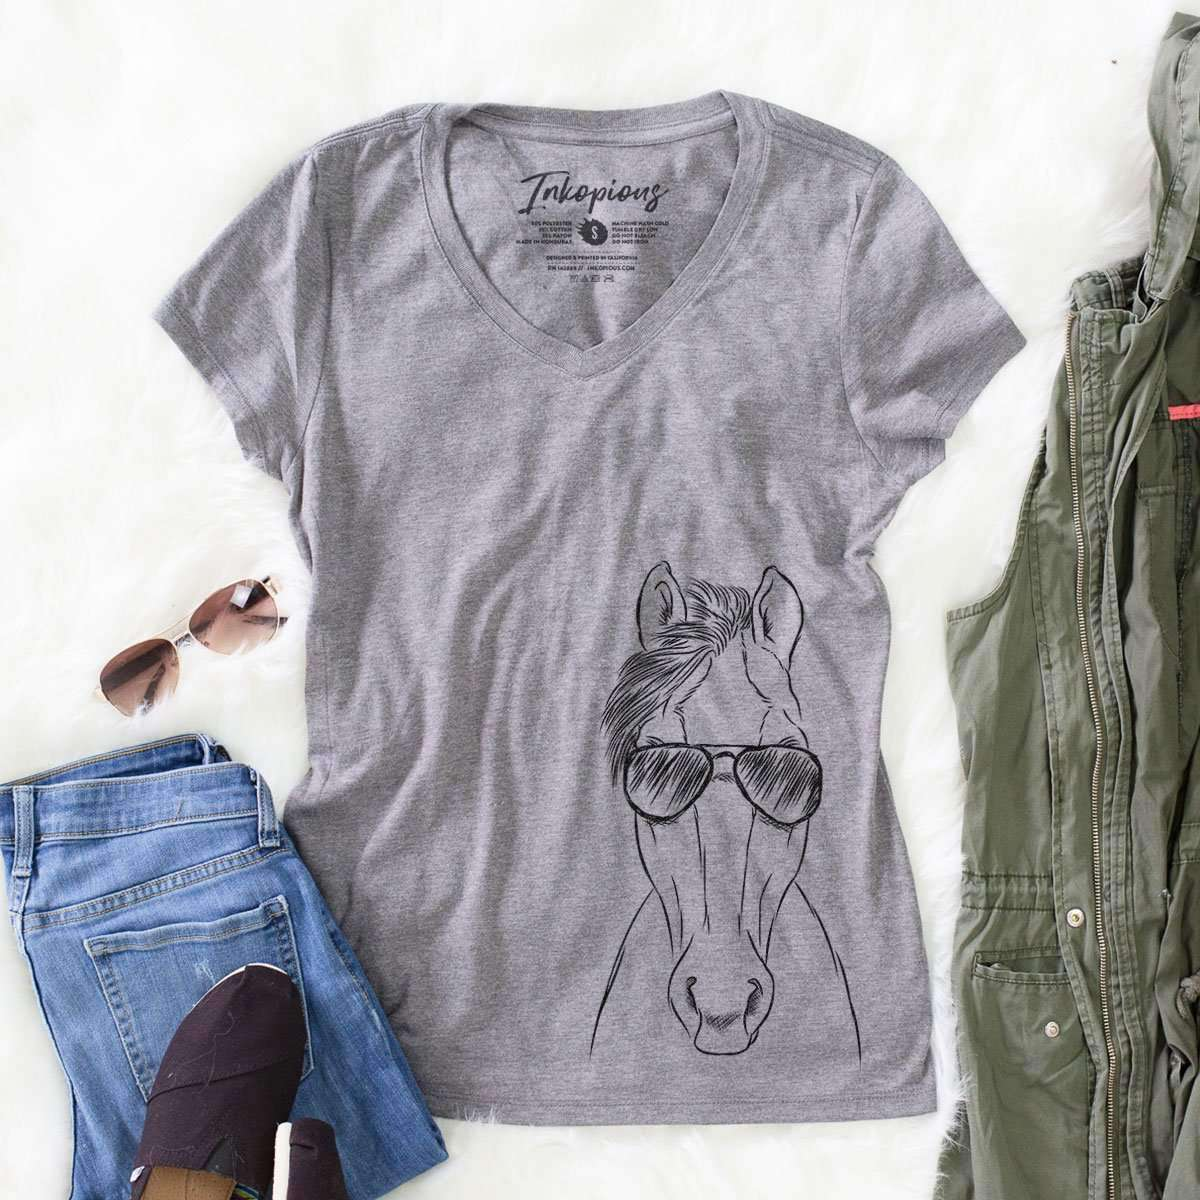 Rio the Horse - Women's Modern Fit V-neck Shirt